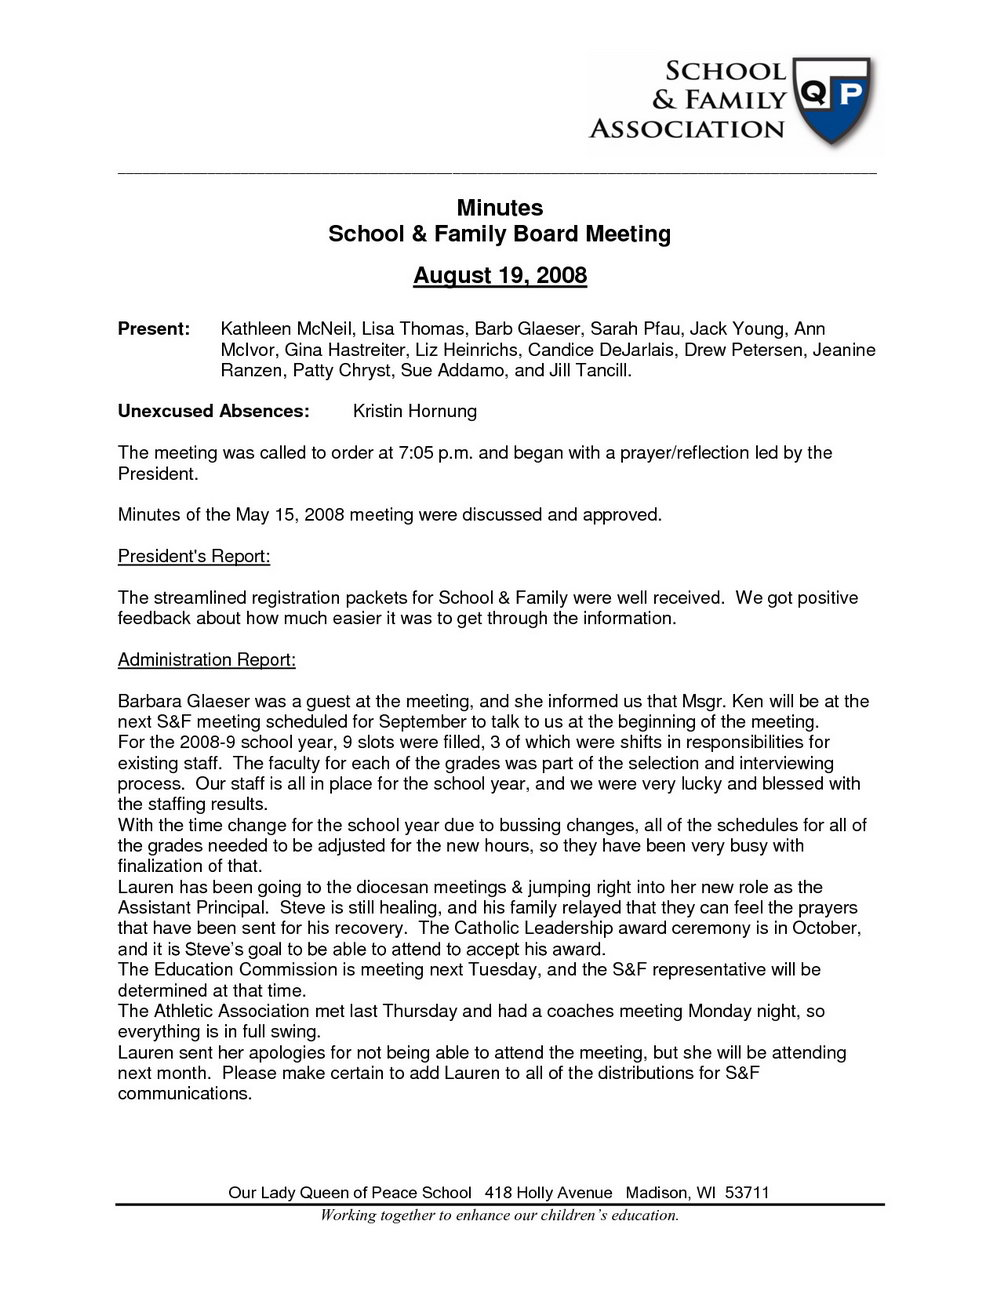 Church Meeting Minutes Template Doc